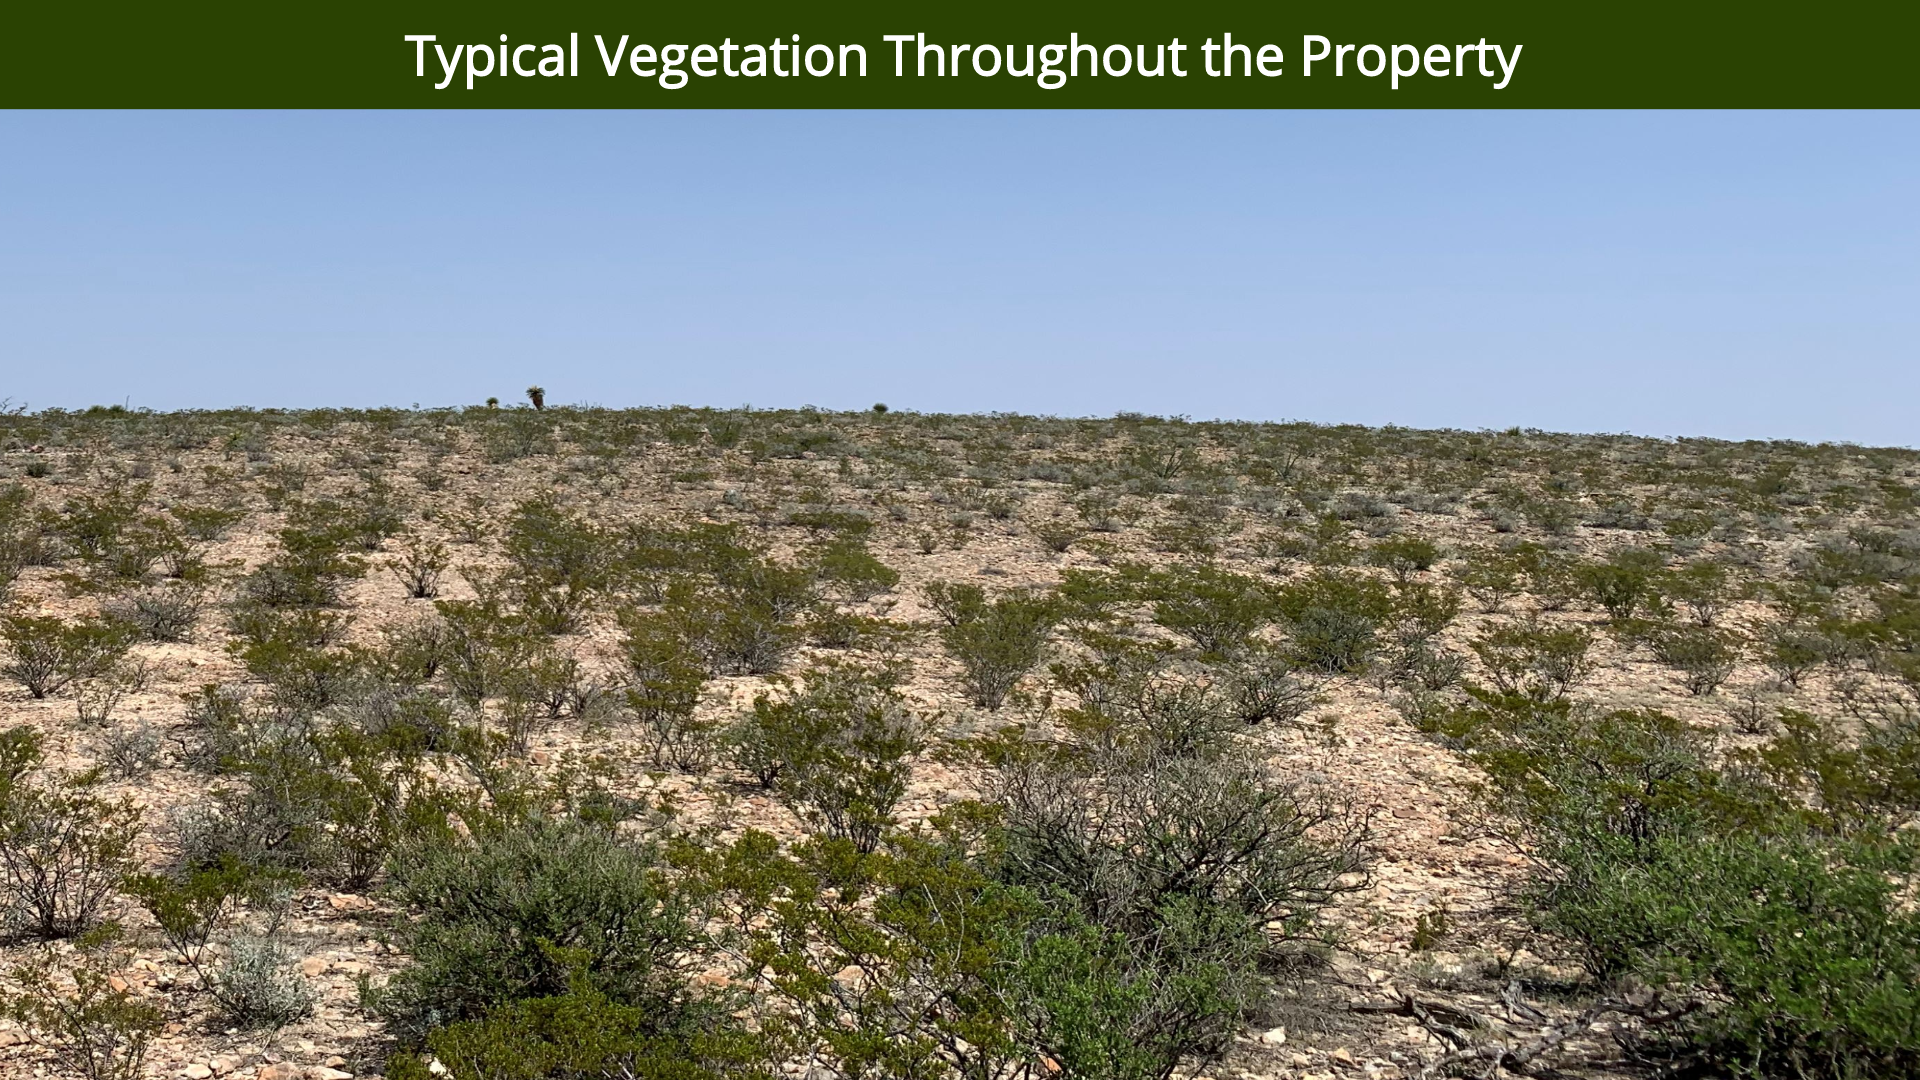 Typical Vegetation Throughout the Proper